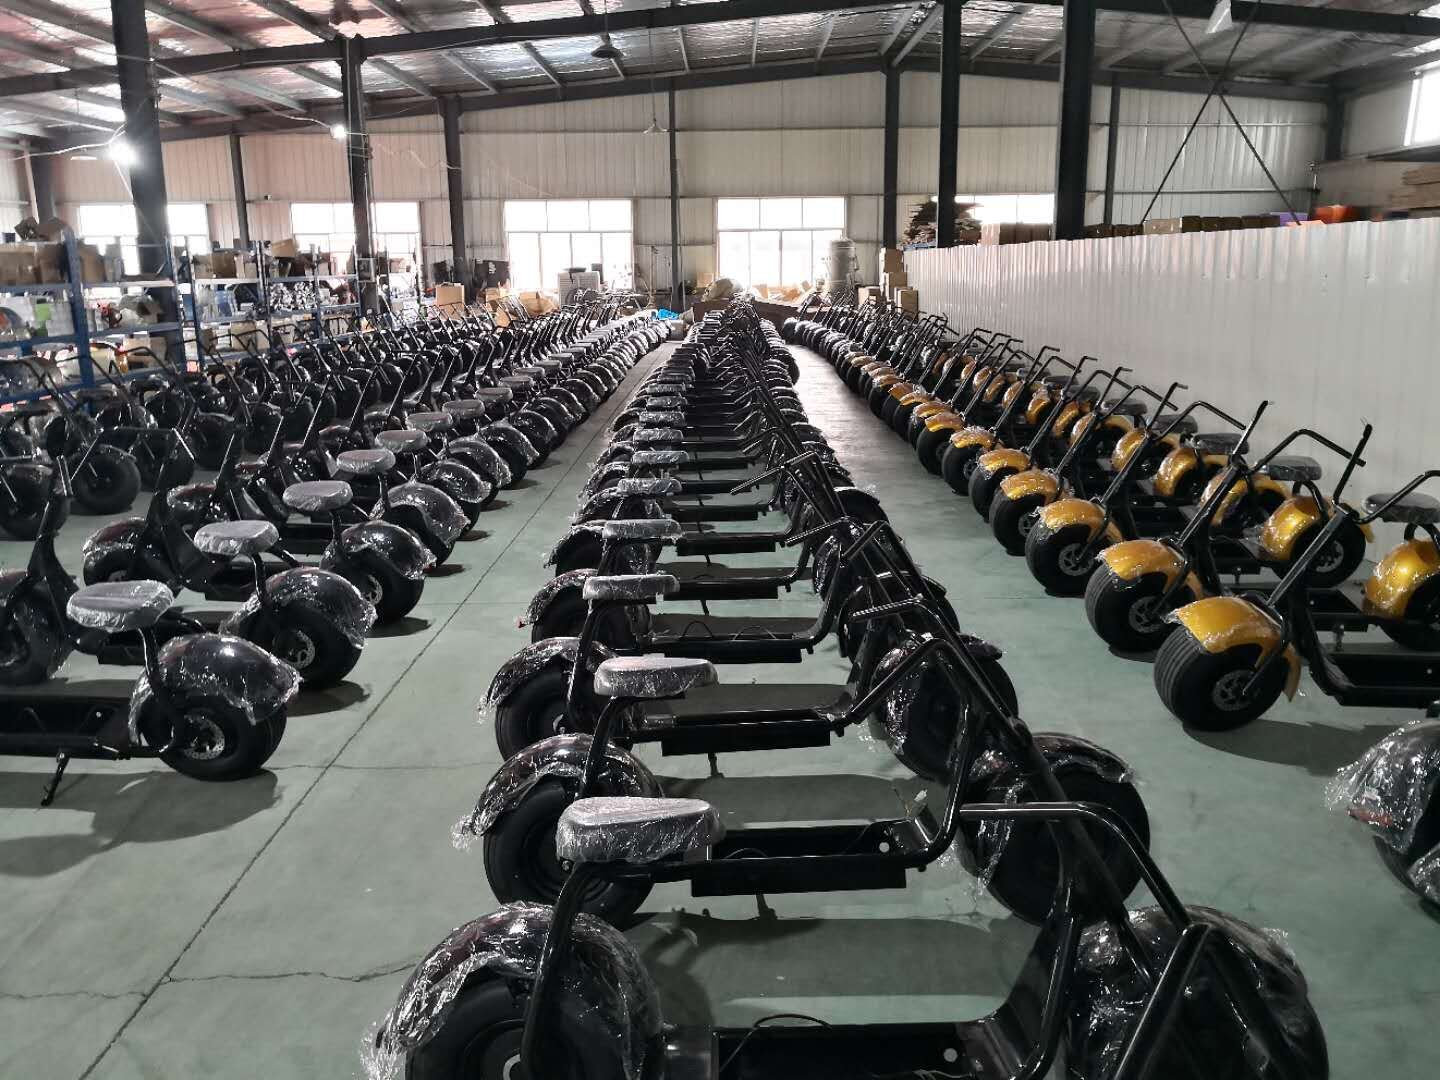 Production of electric scooter in March